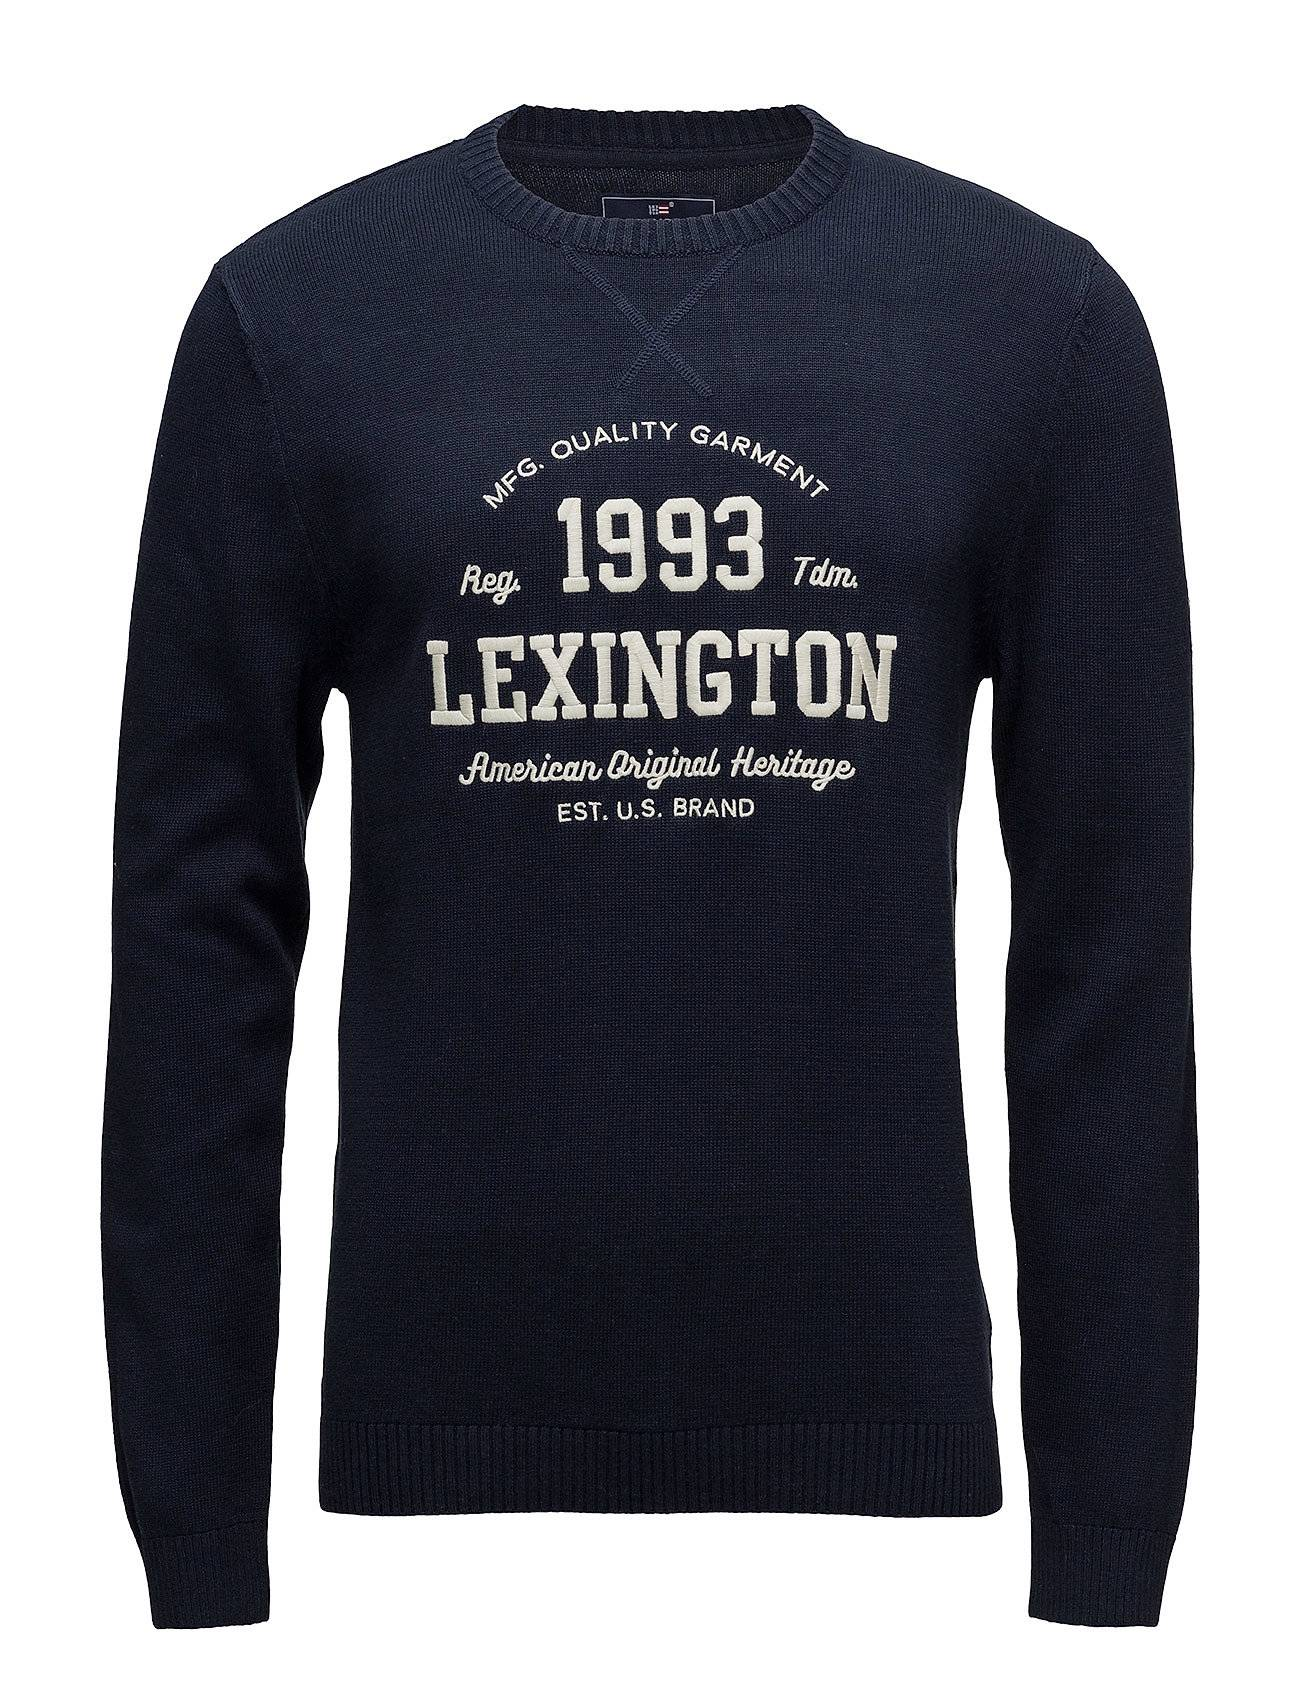 Lexington Clothing Nelson Knitted Sweatshirt